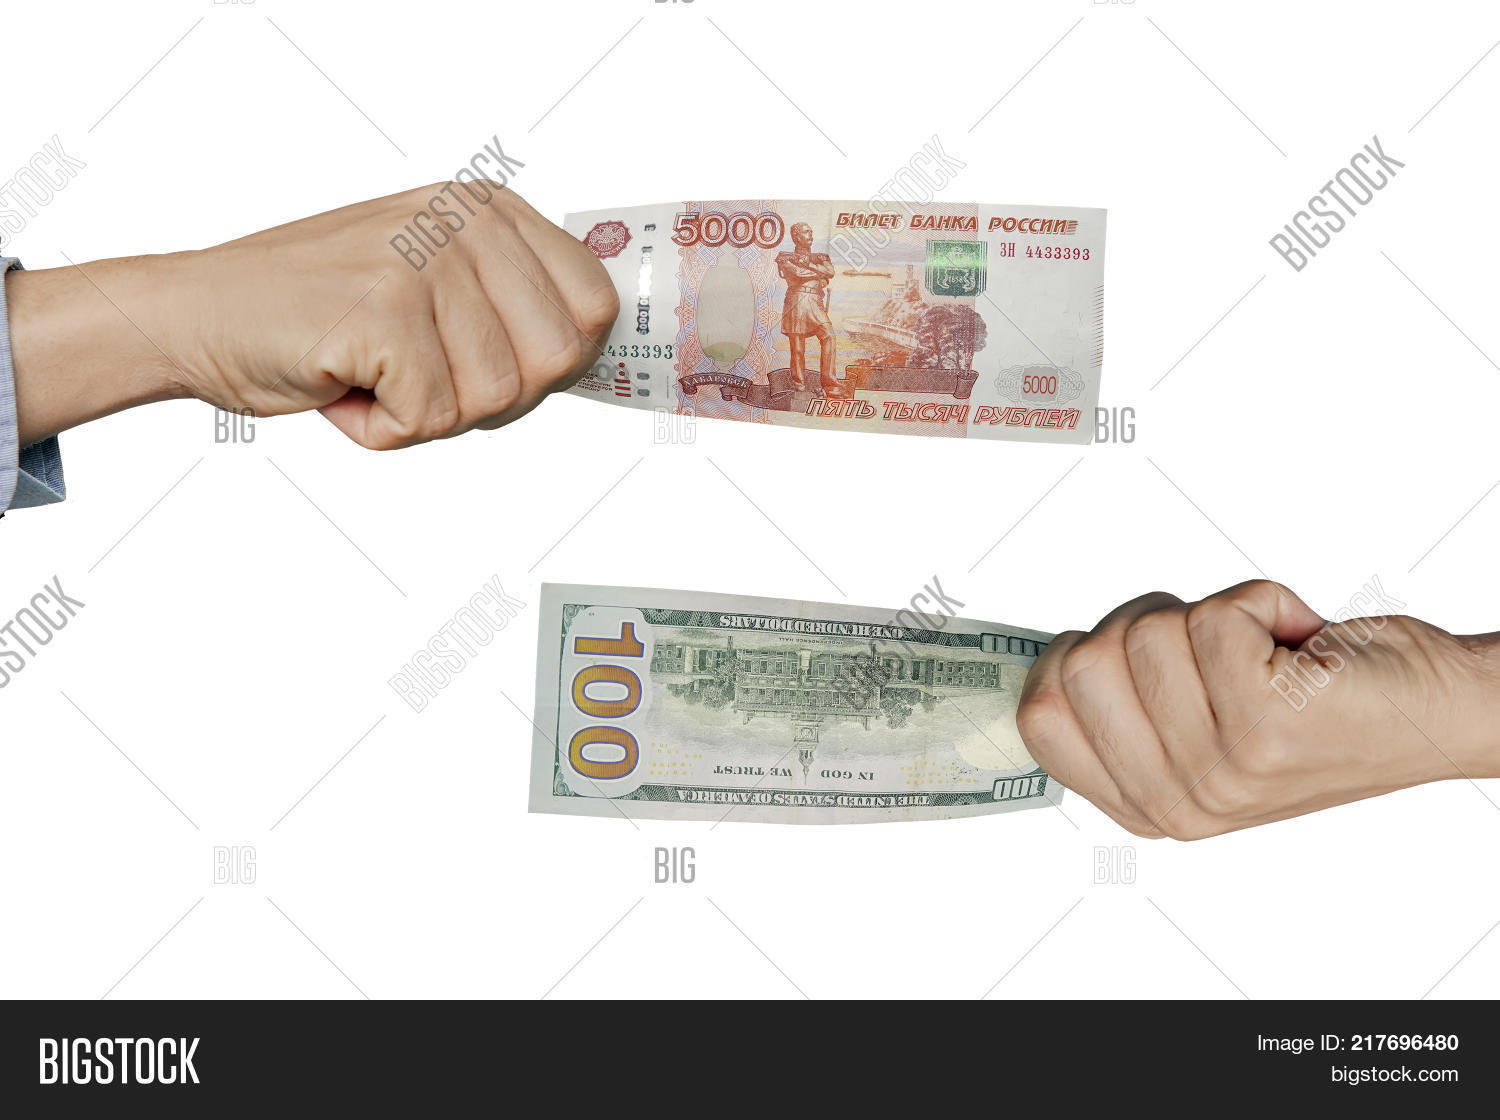 Hands Exchange Rubles Image Photo Free Trial Stock